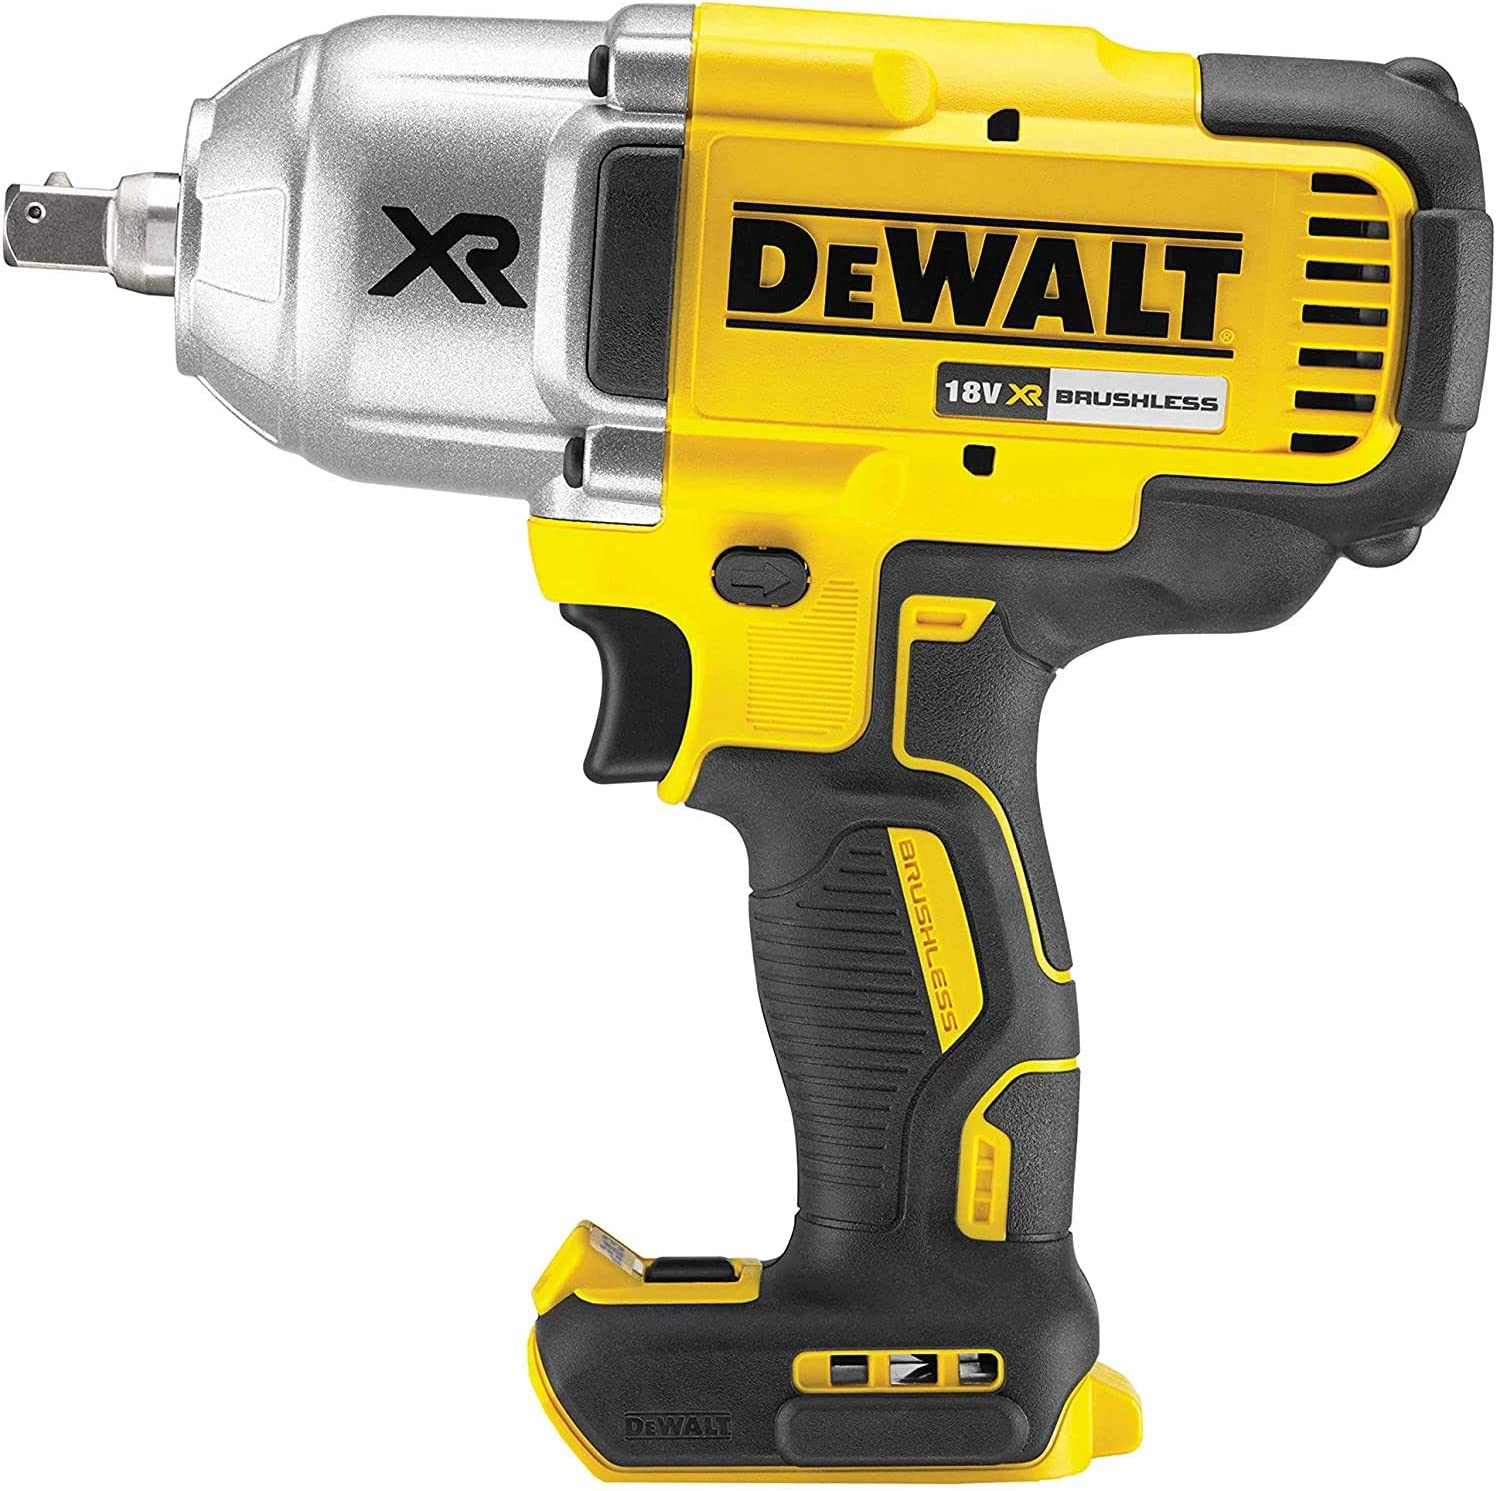 Dewalt DCF899N 18V High Torque Brushless Impact Wrench with 1 x 4.0Ah Battery /& Charger